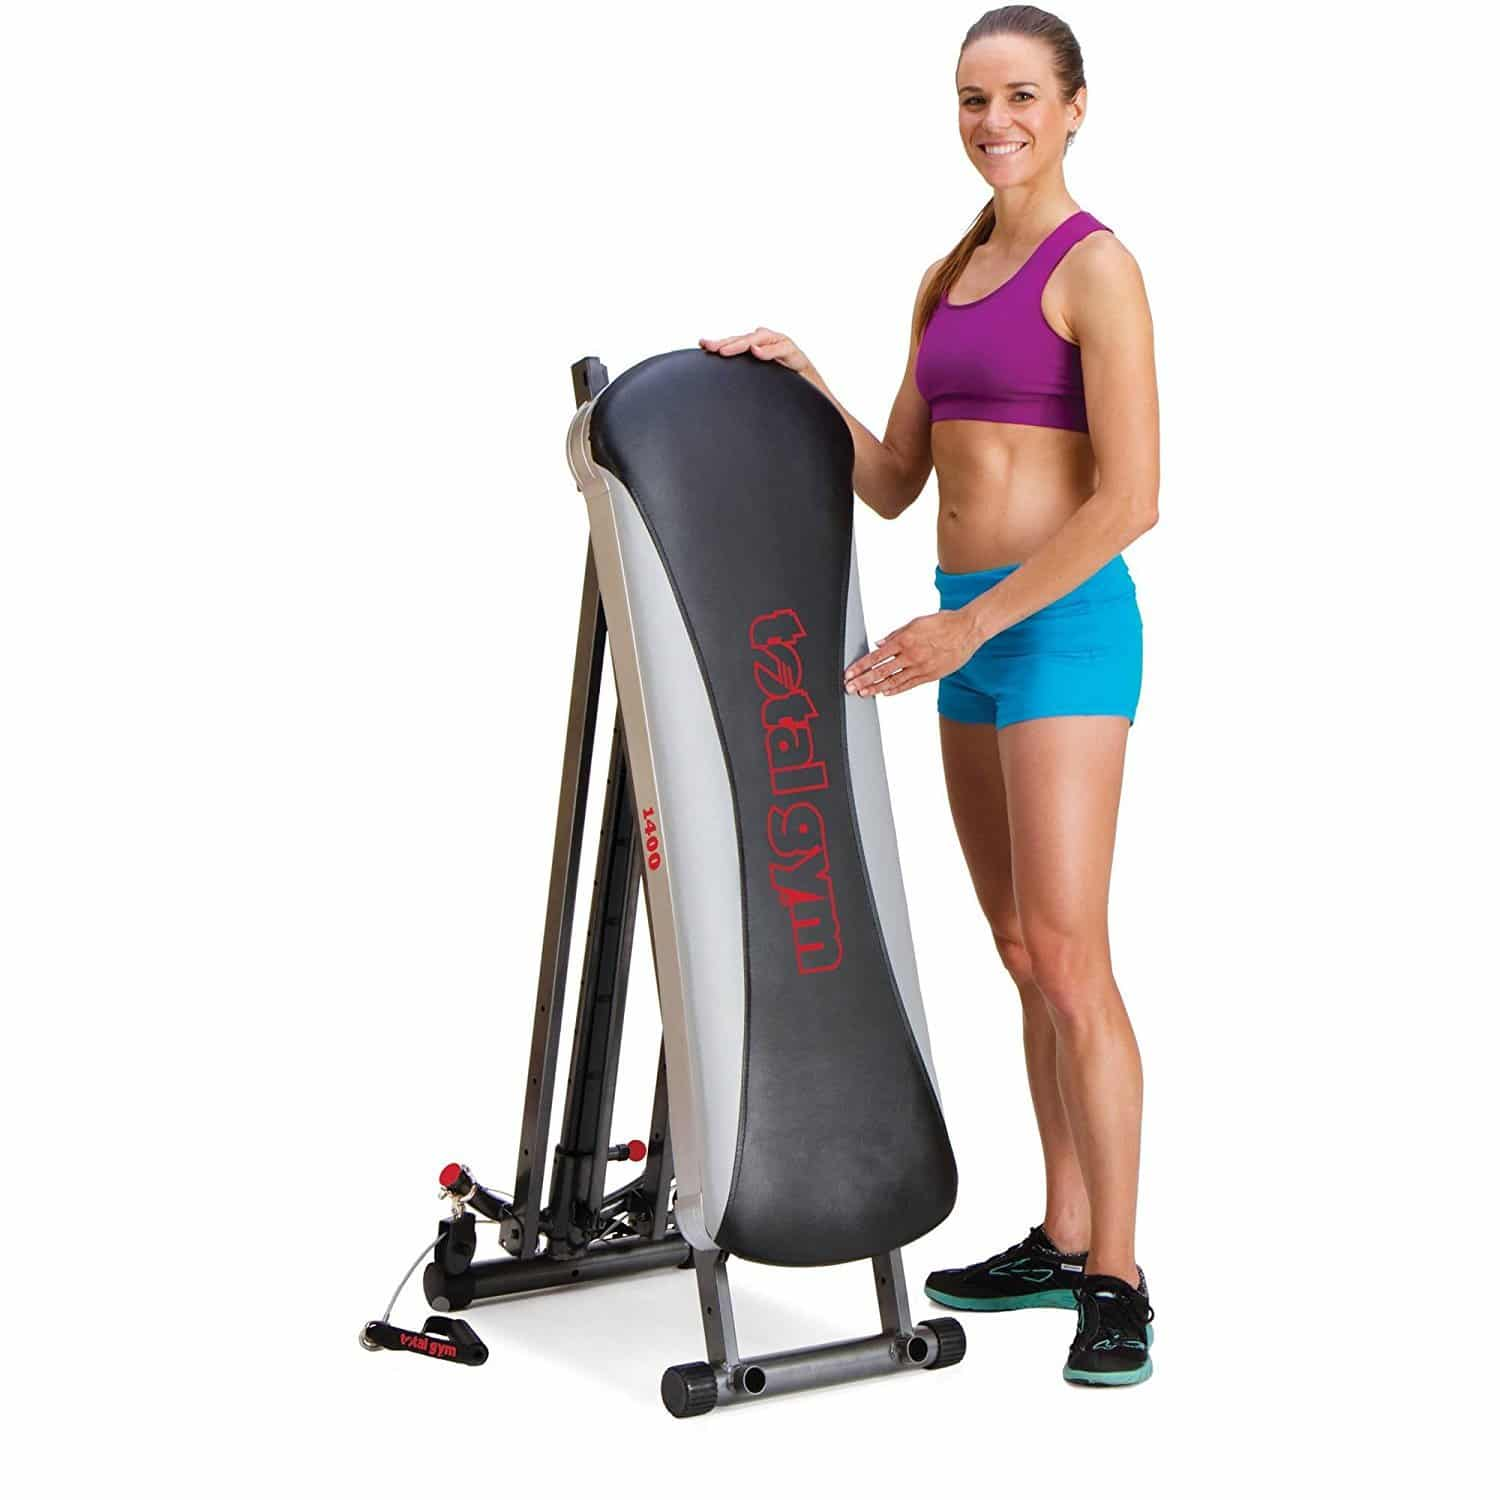 Total gym reviews- 12 best RATED machines and their accessories 5